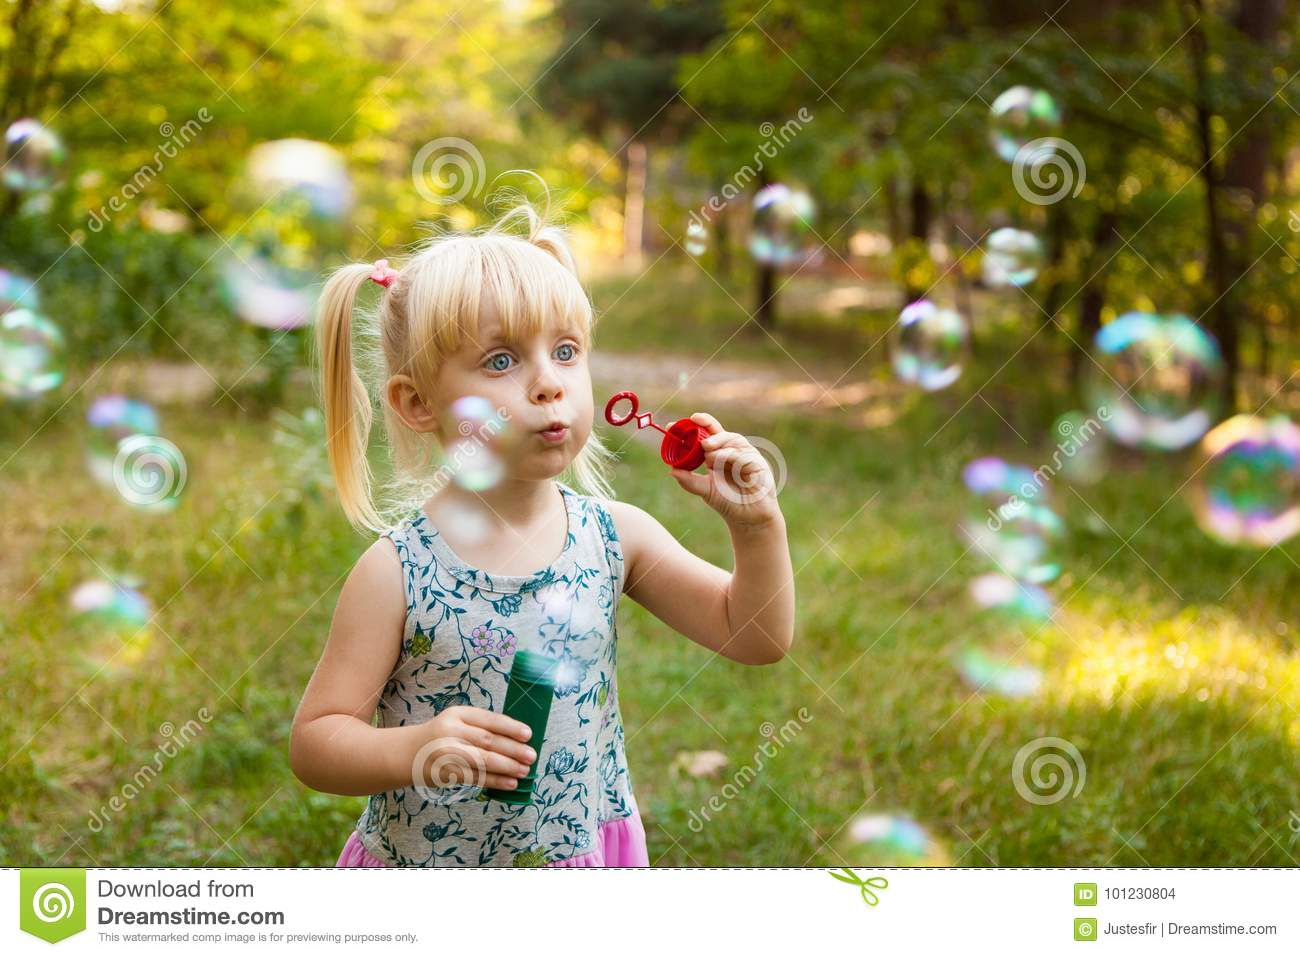 Child and soap bubbles in summer